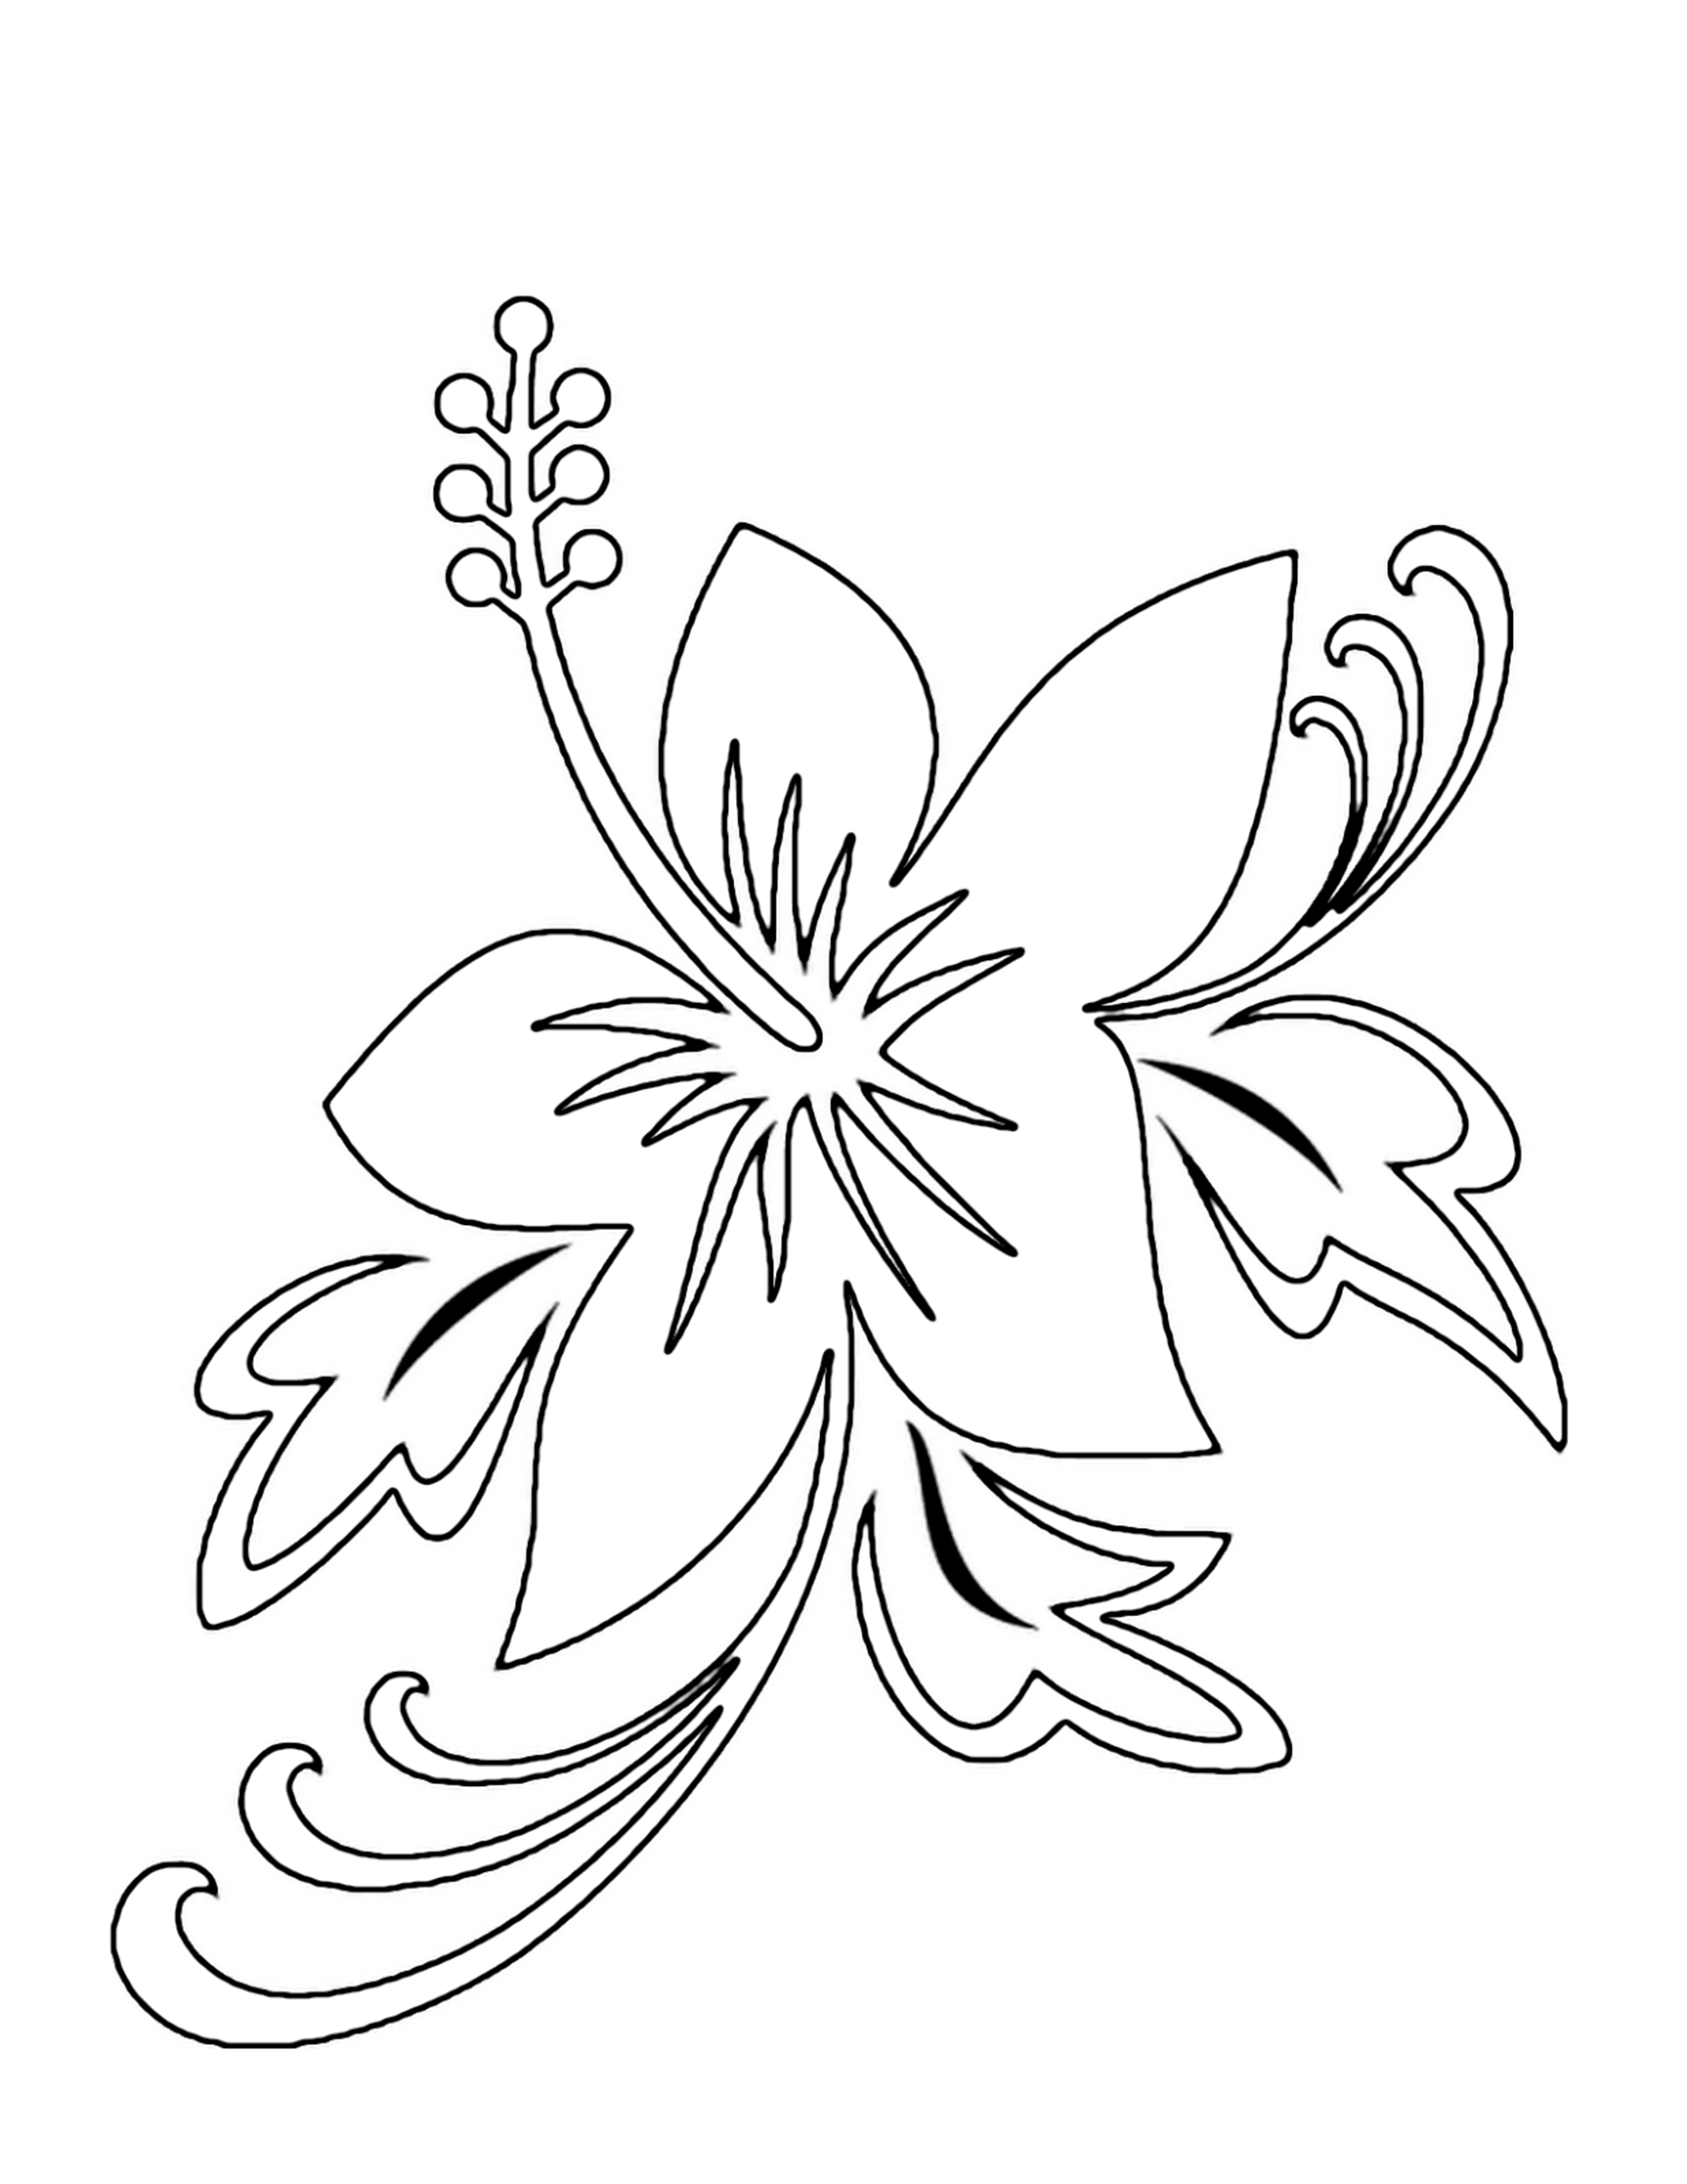 pictures of flowers to color free printables free printable flower coloring pages for kids best printables pictures to of free color flowers